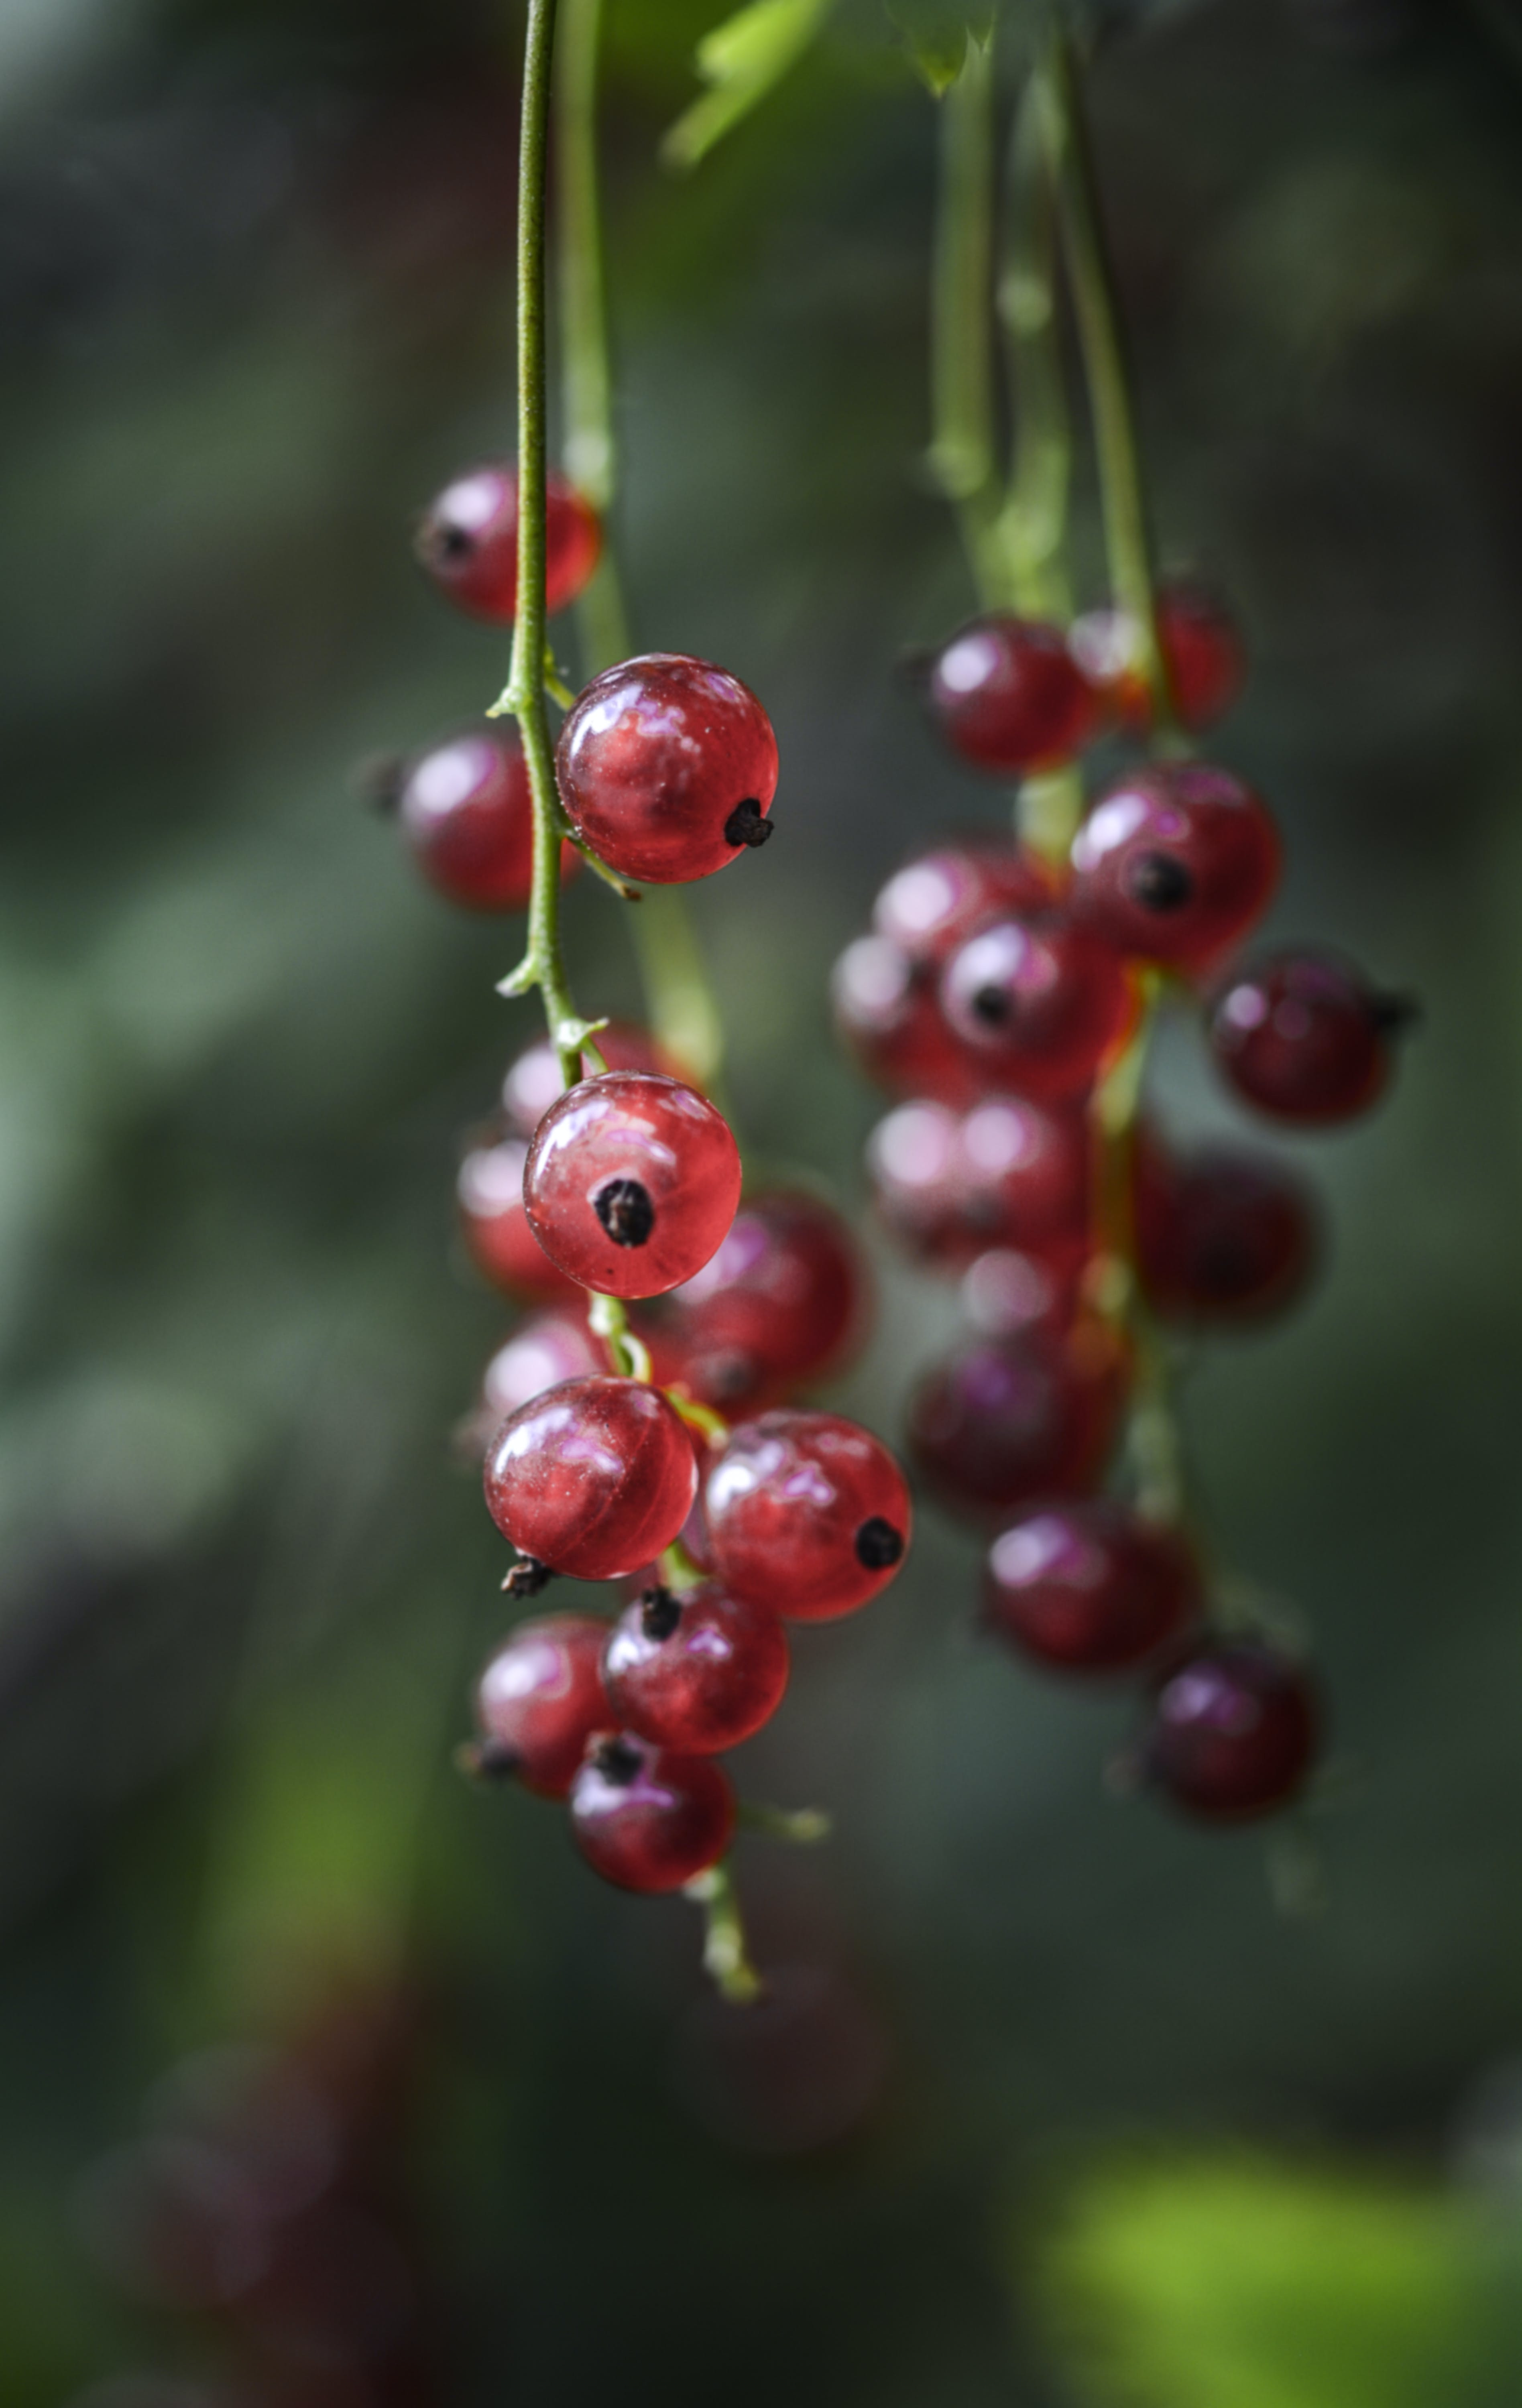 Focus Photography of Red Round Fruit